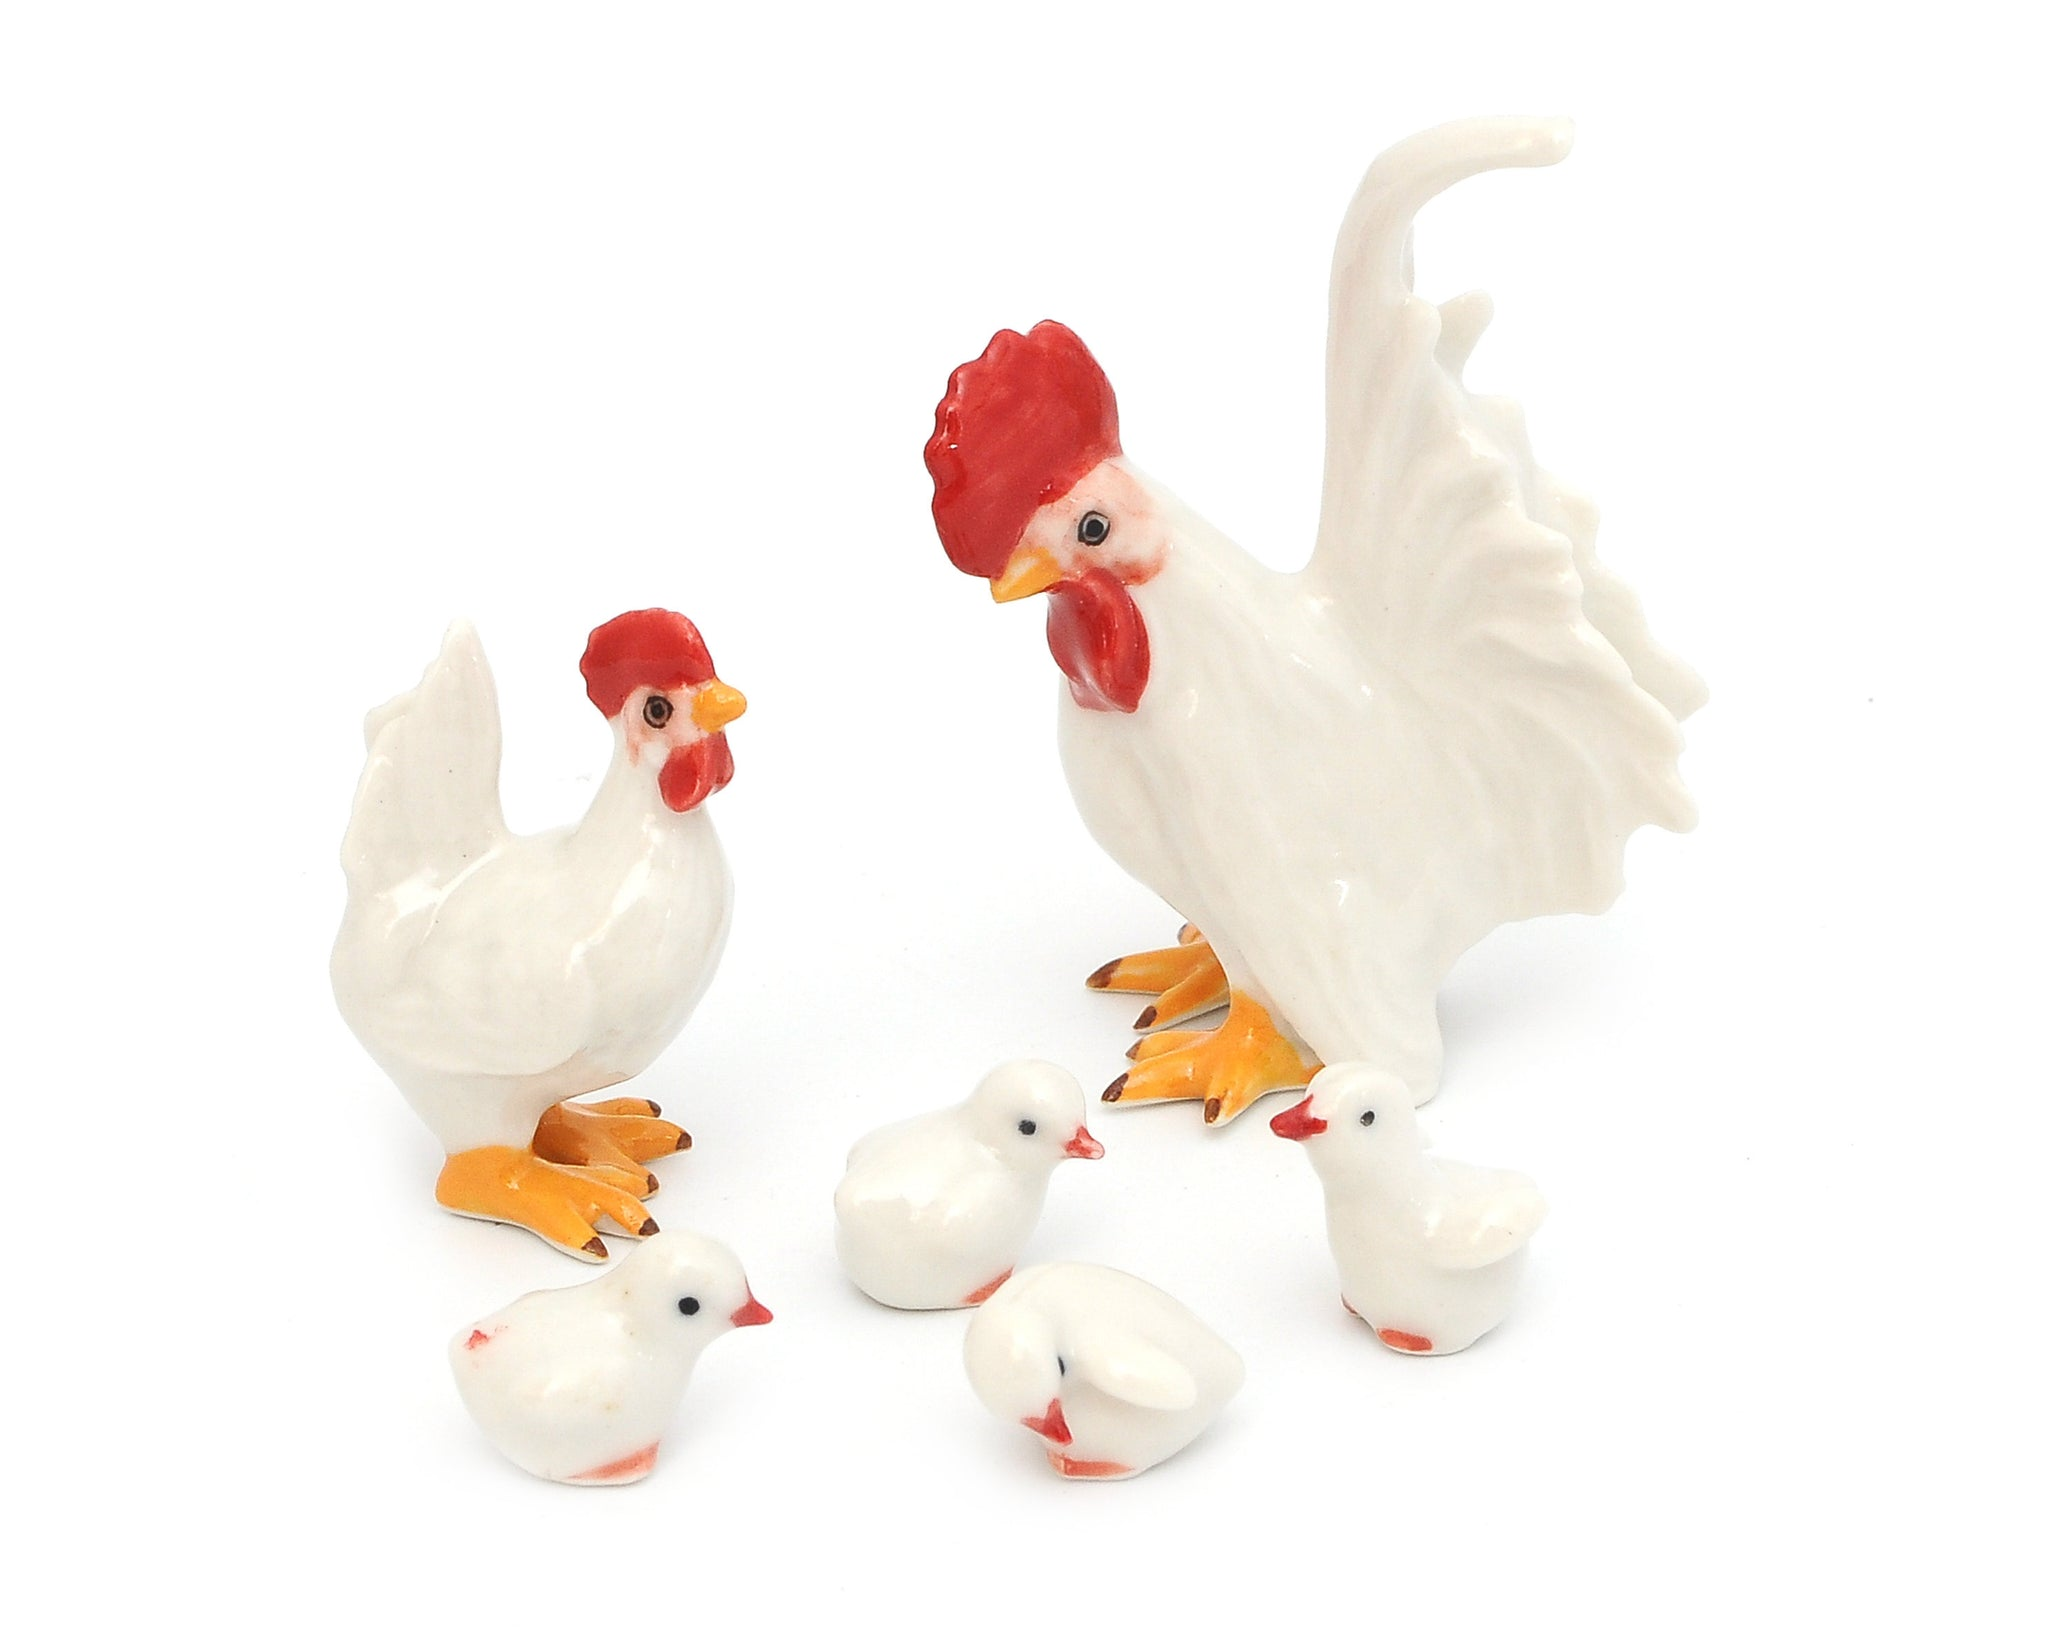 Handmade Miniatures Ceramic Chickens Figurine Animals Decor/Animal Collection